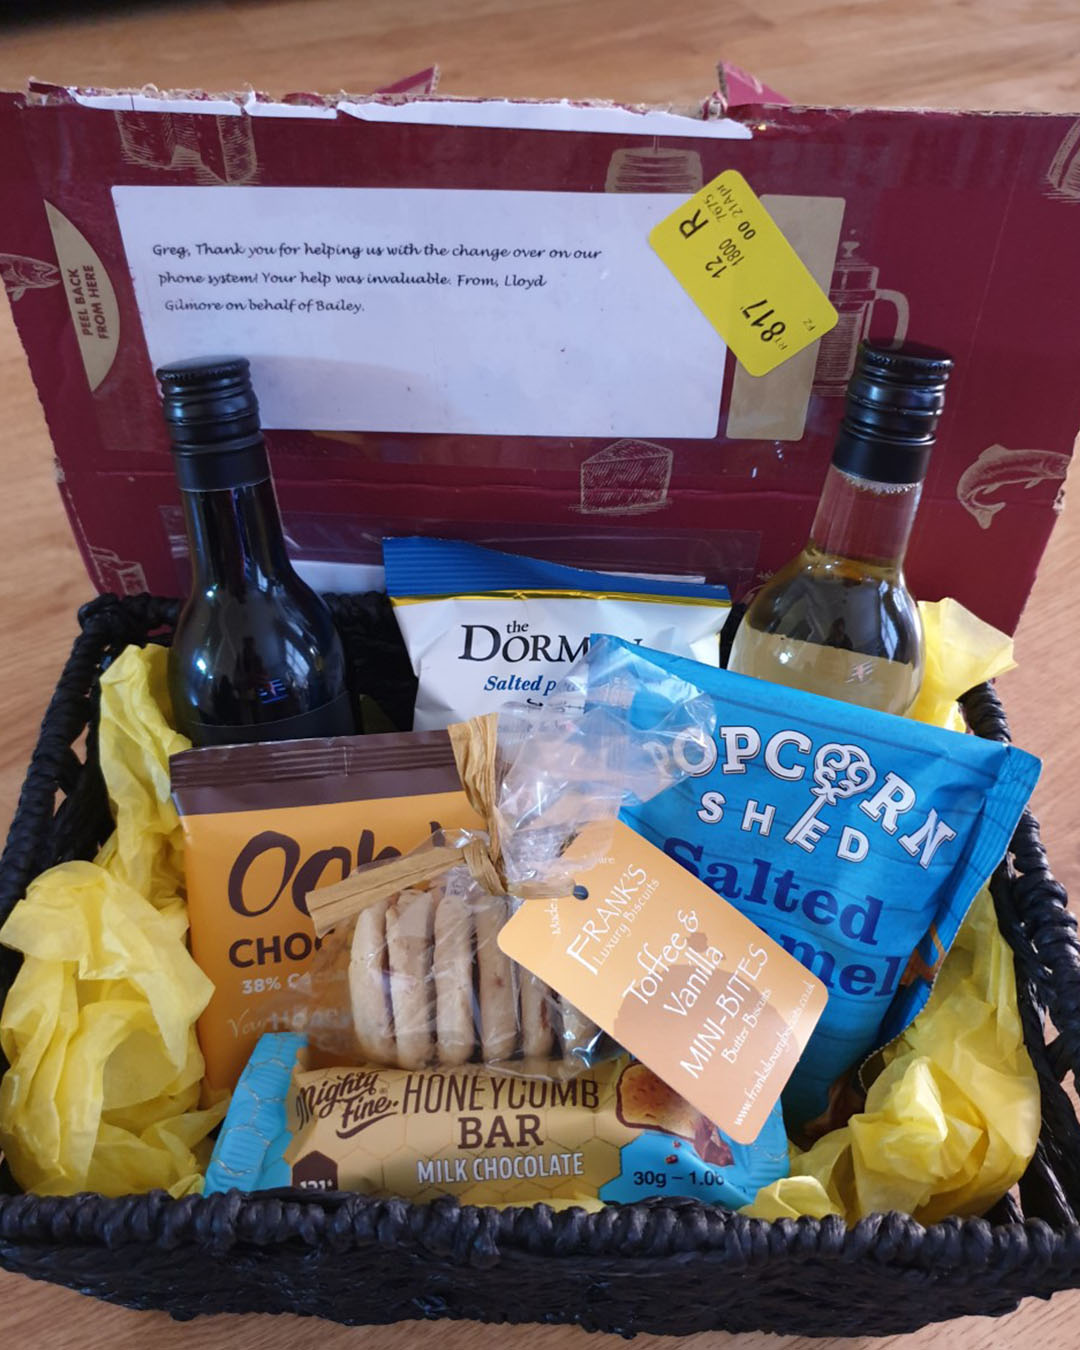 The gift hamper basket that Greg received for offering his free customer support assistance